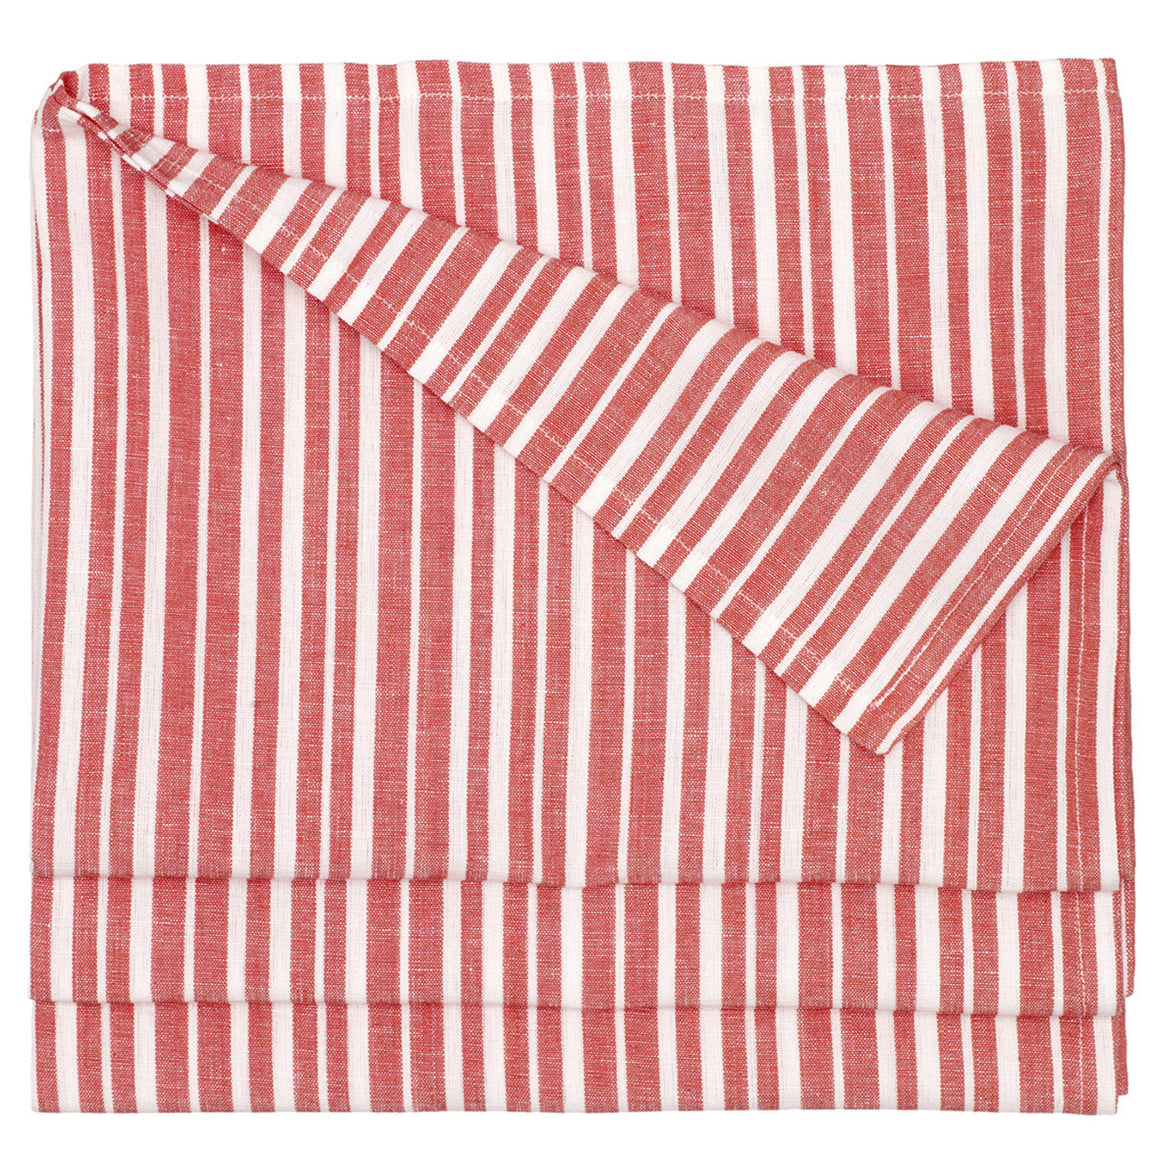 Palermo Ticking Stripe Cotton Linen Tablecloth in Geranium Red Canada usa